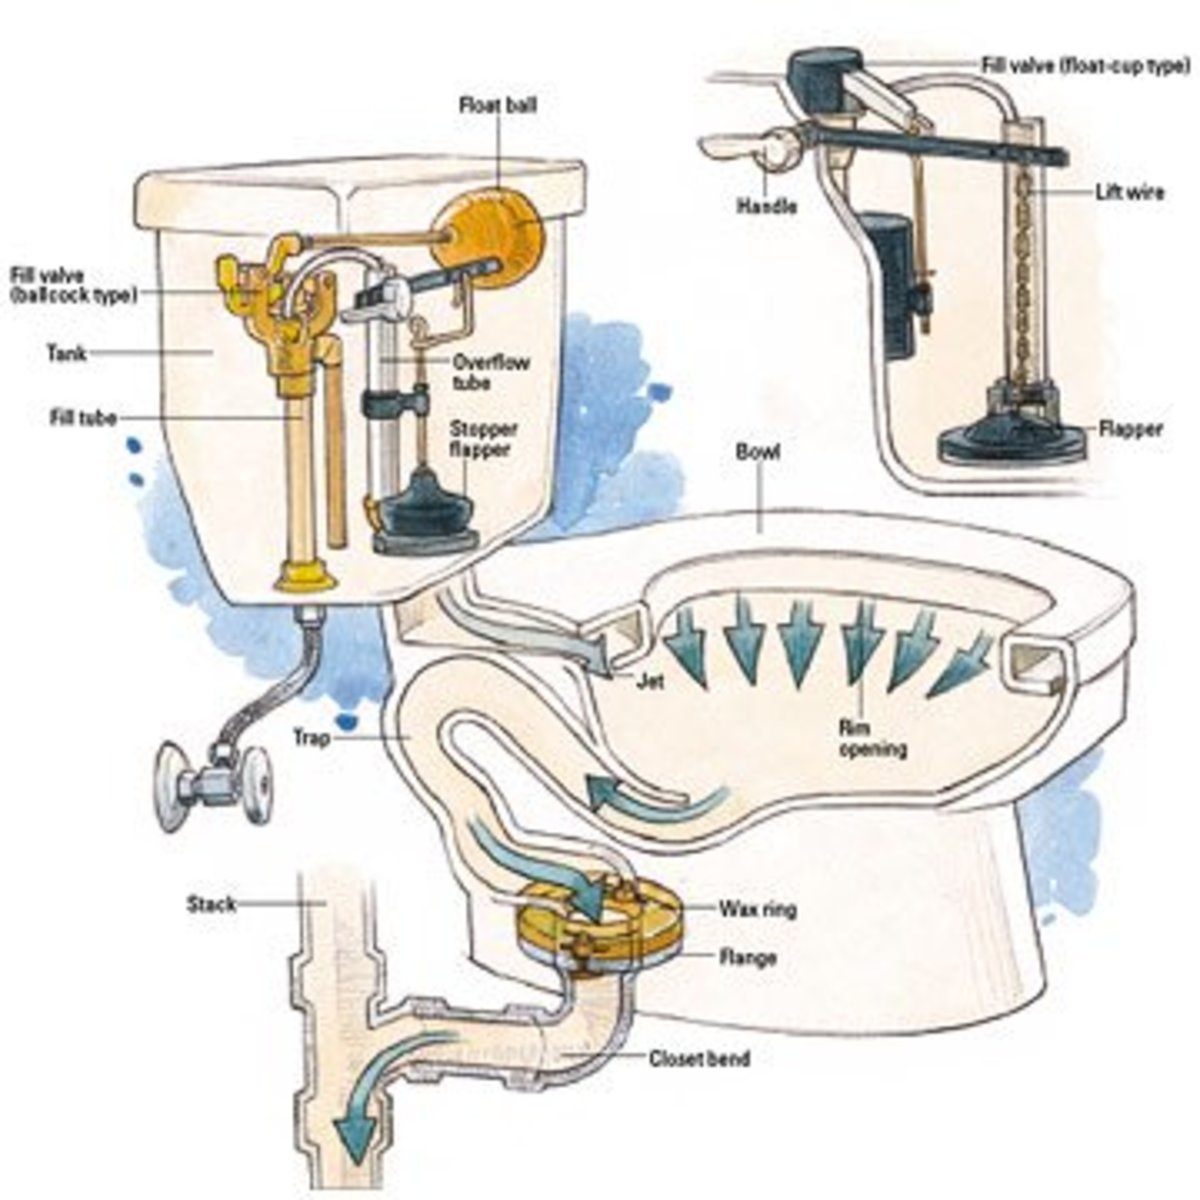 common-toilet-troubles-how-to-address-them